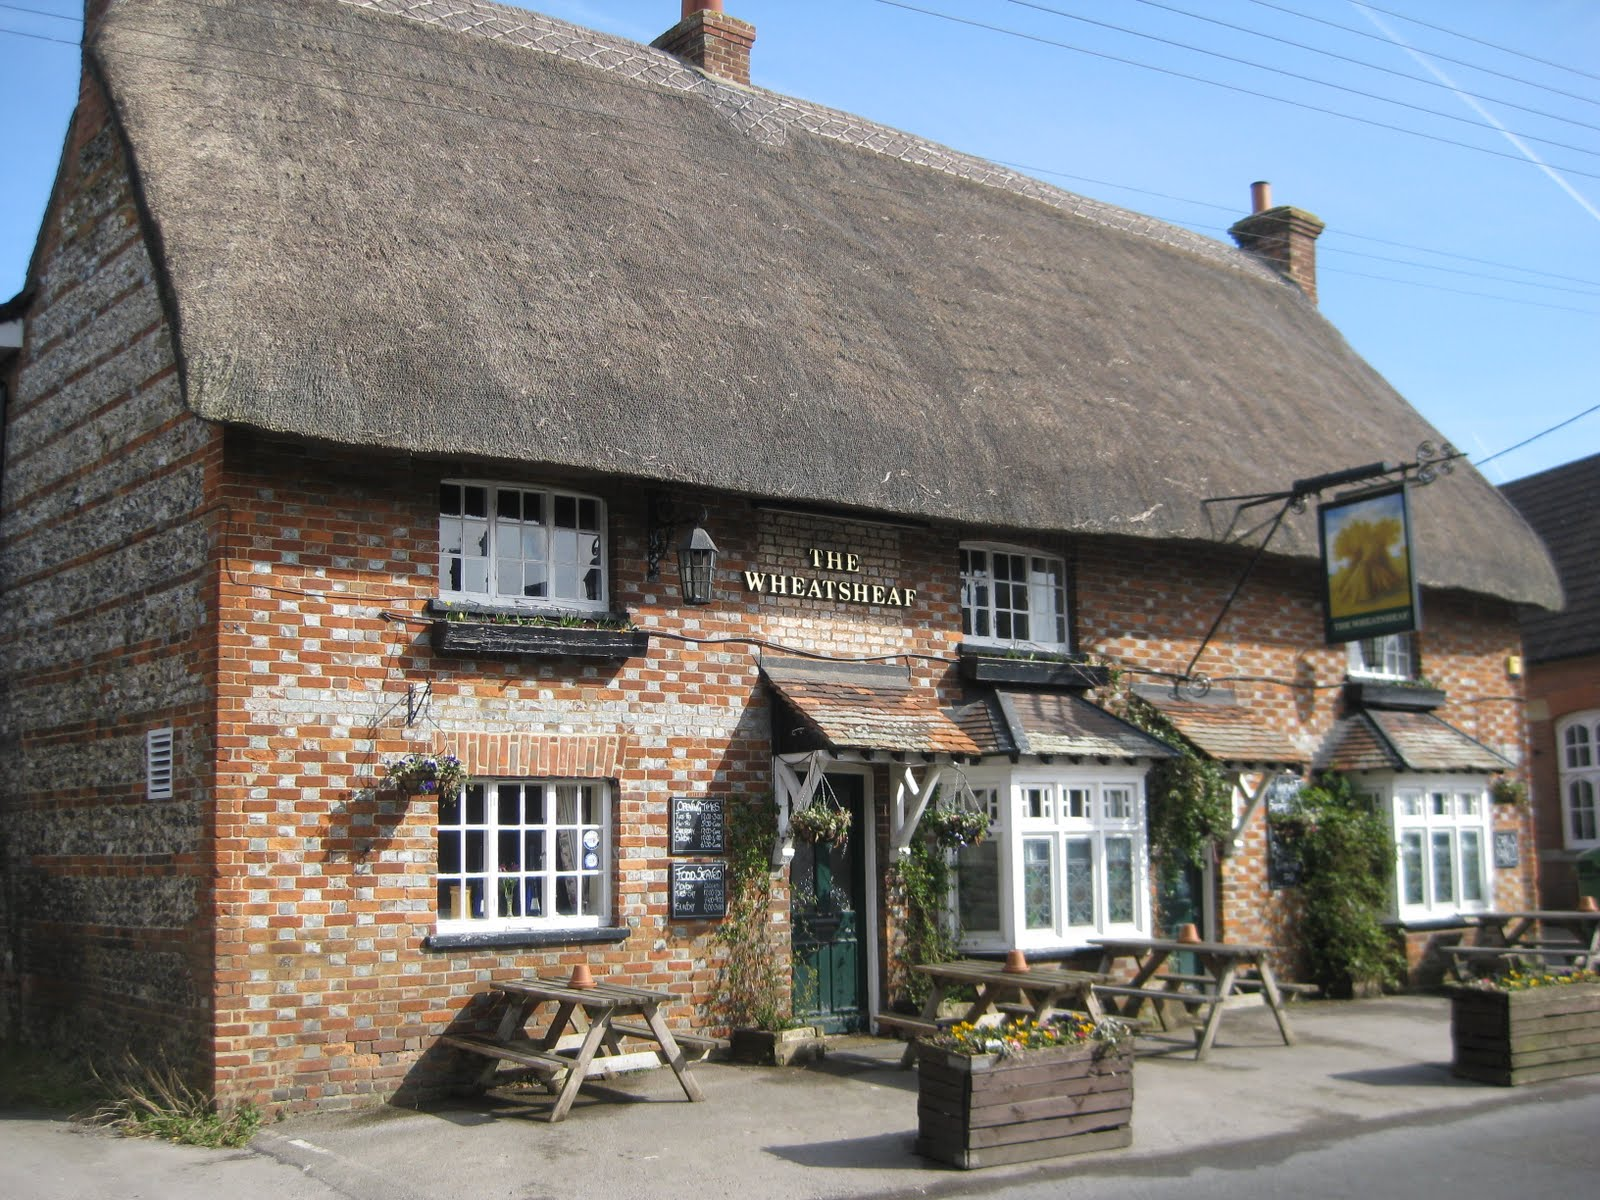 Note that thatched roof